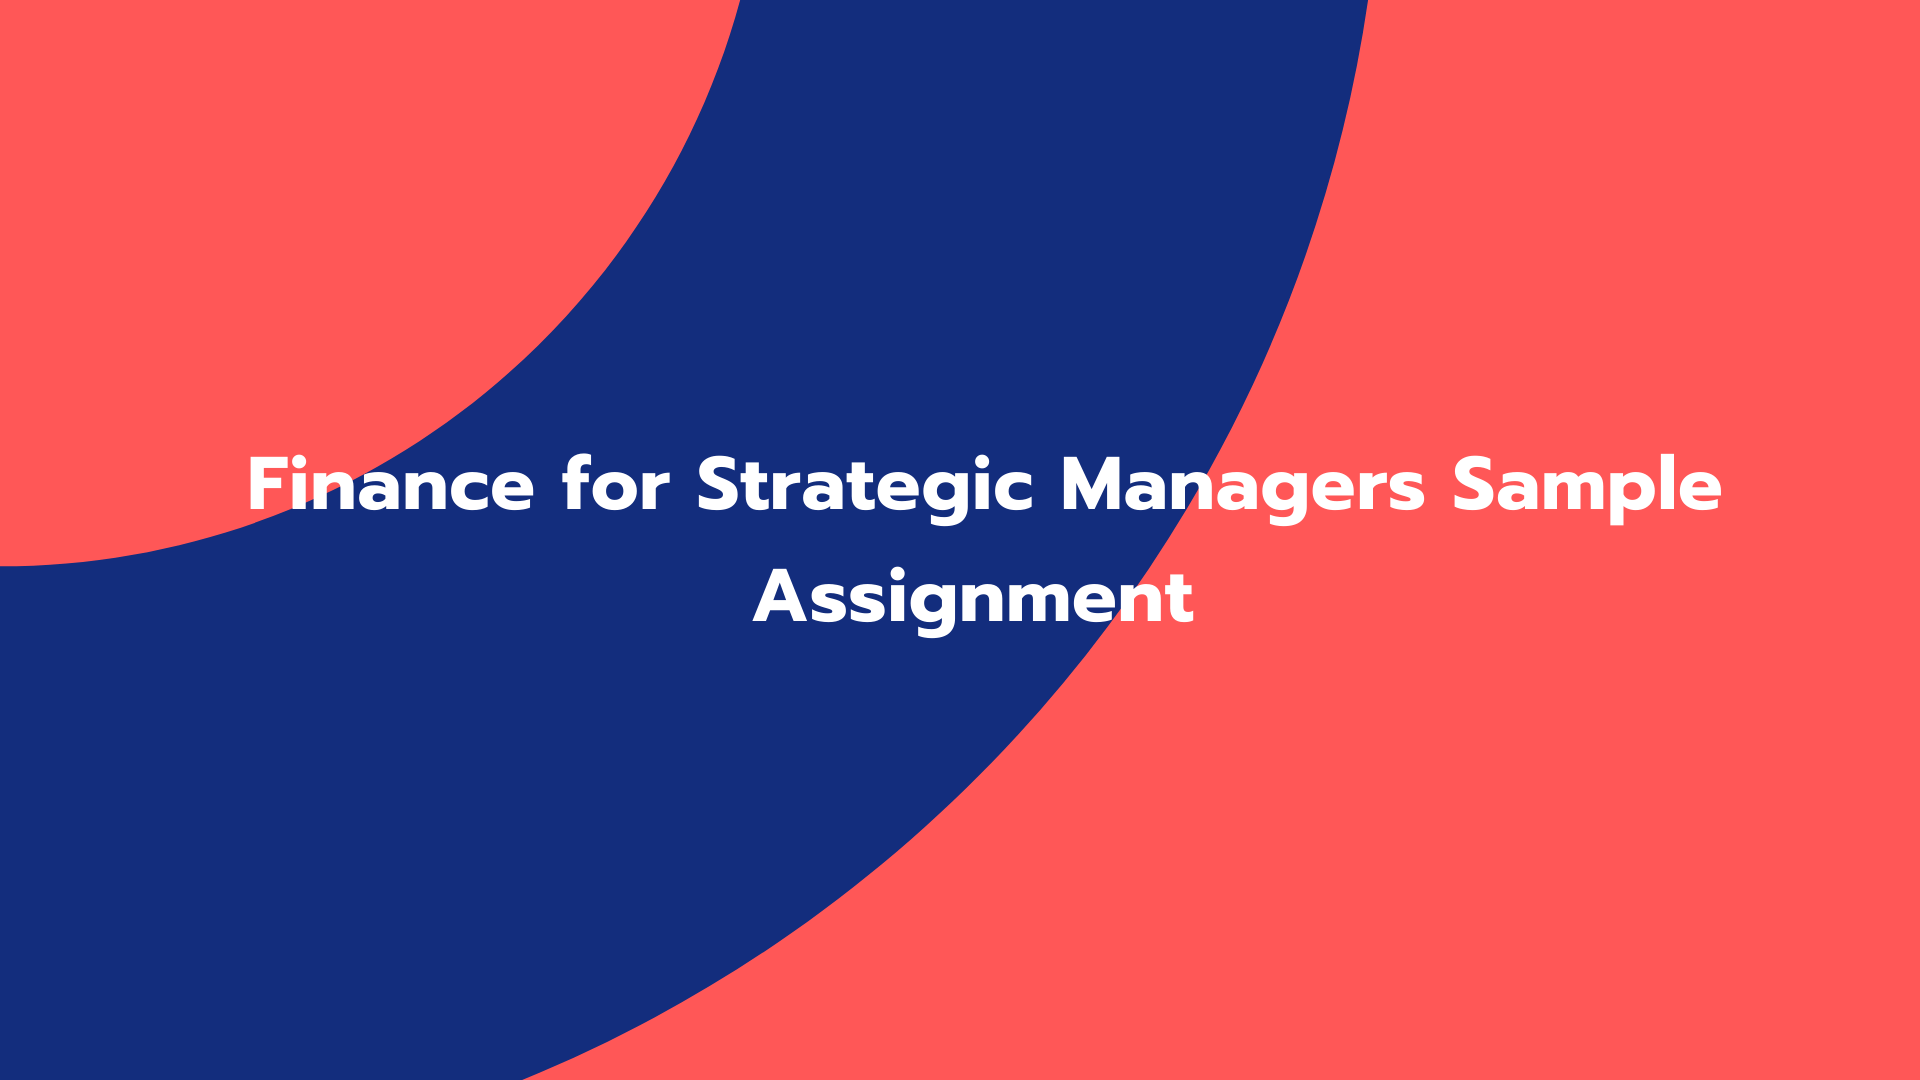 Finance for Strategic Managers